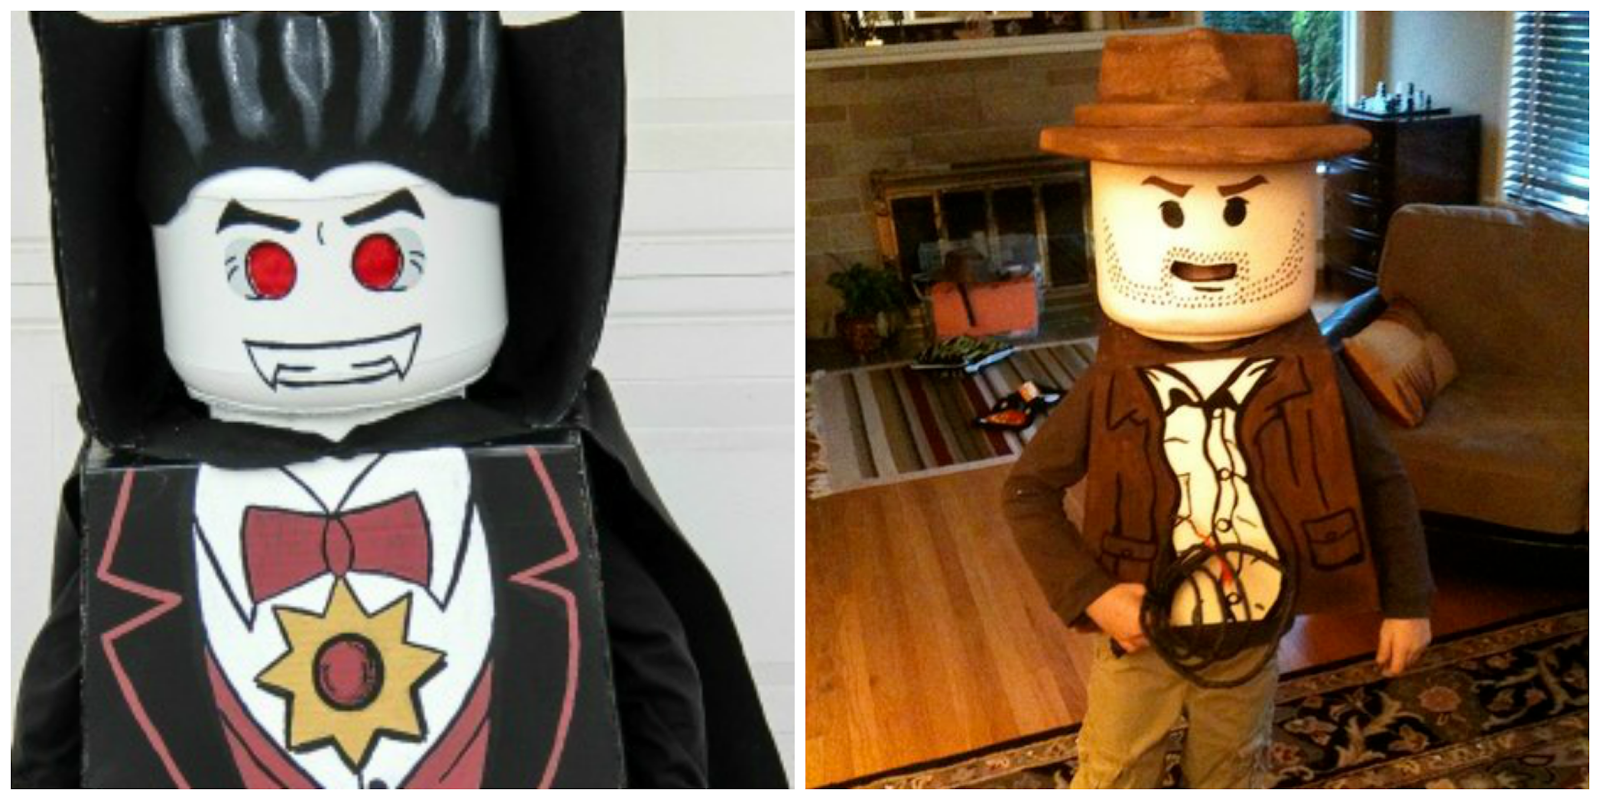 LEGO INDIANA AND VAMPIRE COSTUME DIY / DISFRAZ TUTORIAL